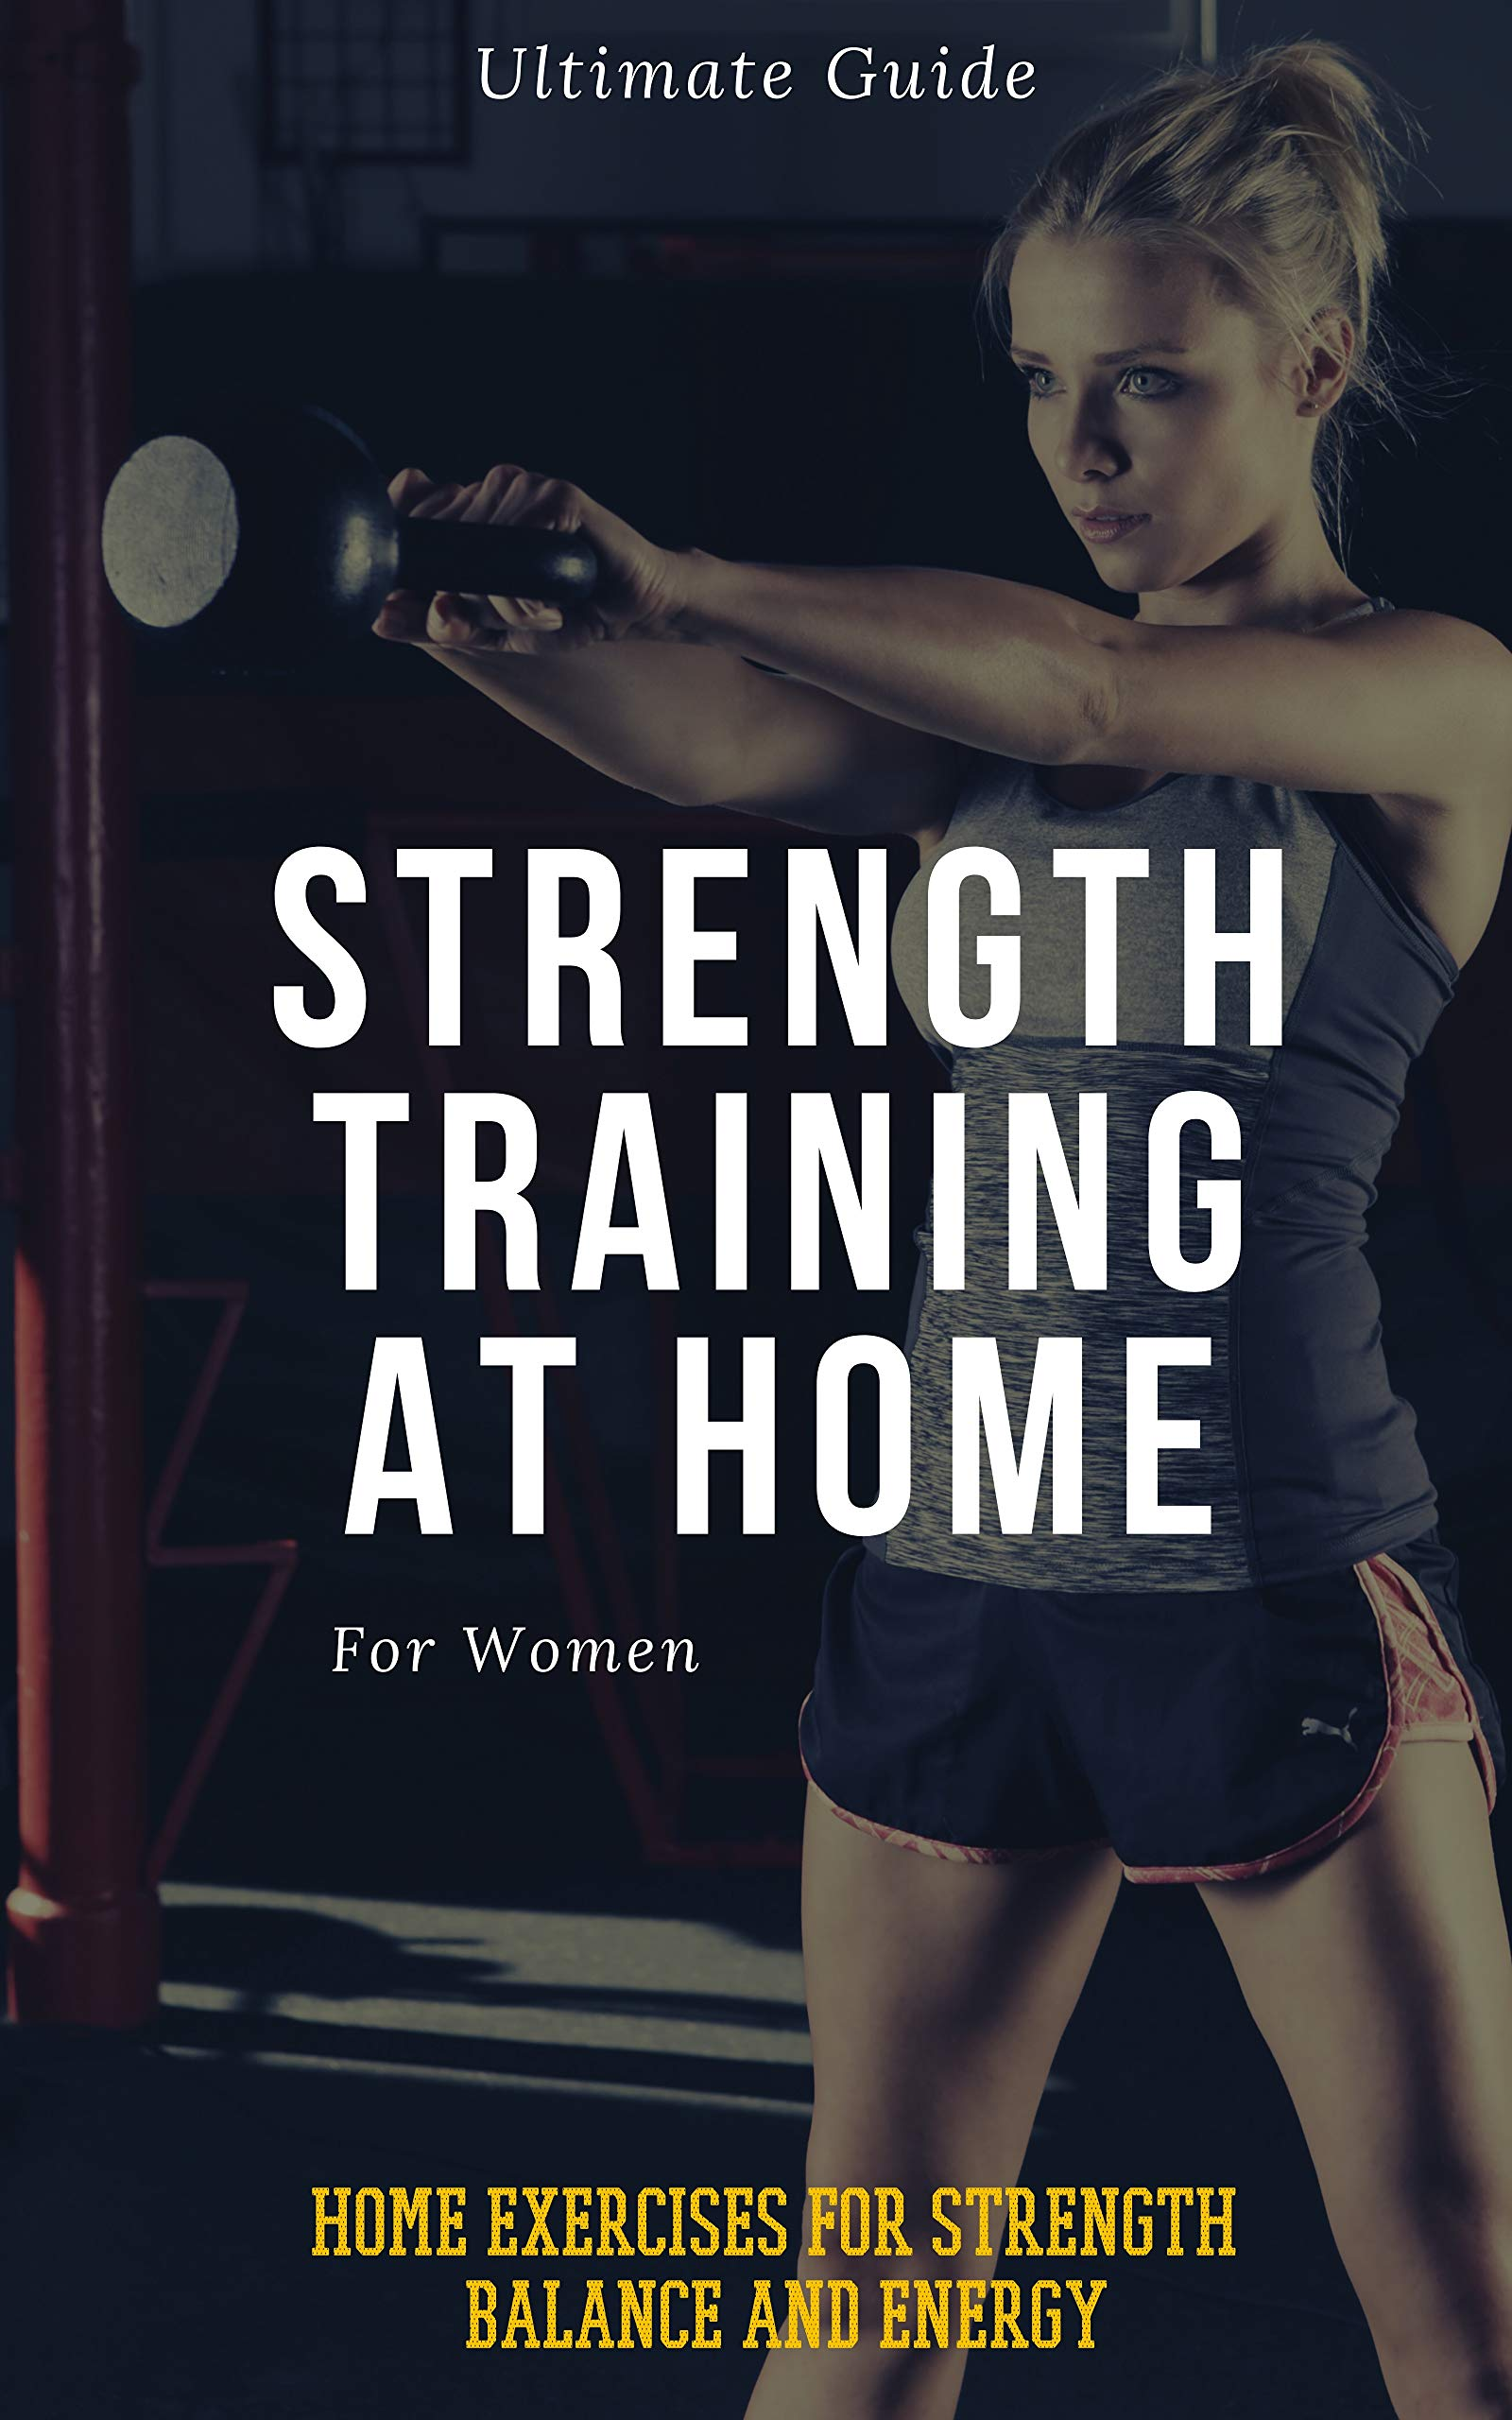 Strength Training for Women At Home: Exercises, Tips, Workout Routines and Benefits of Home Training